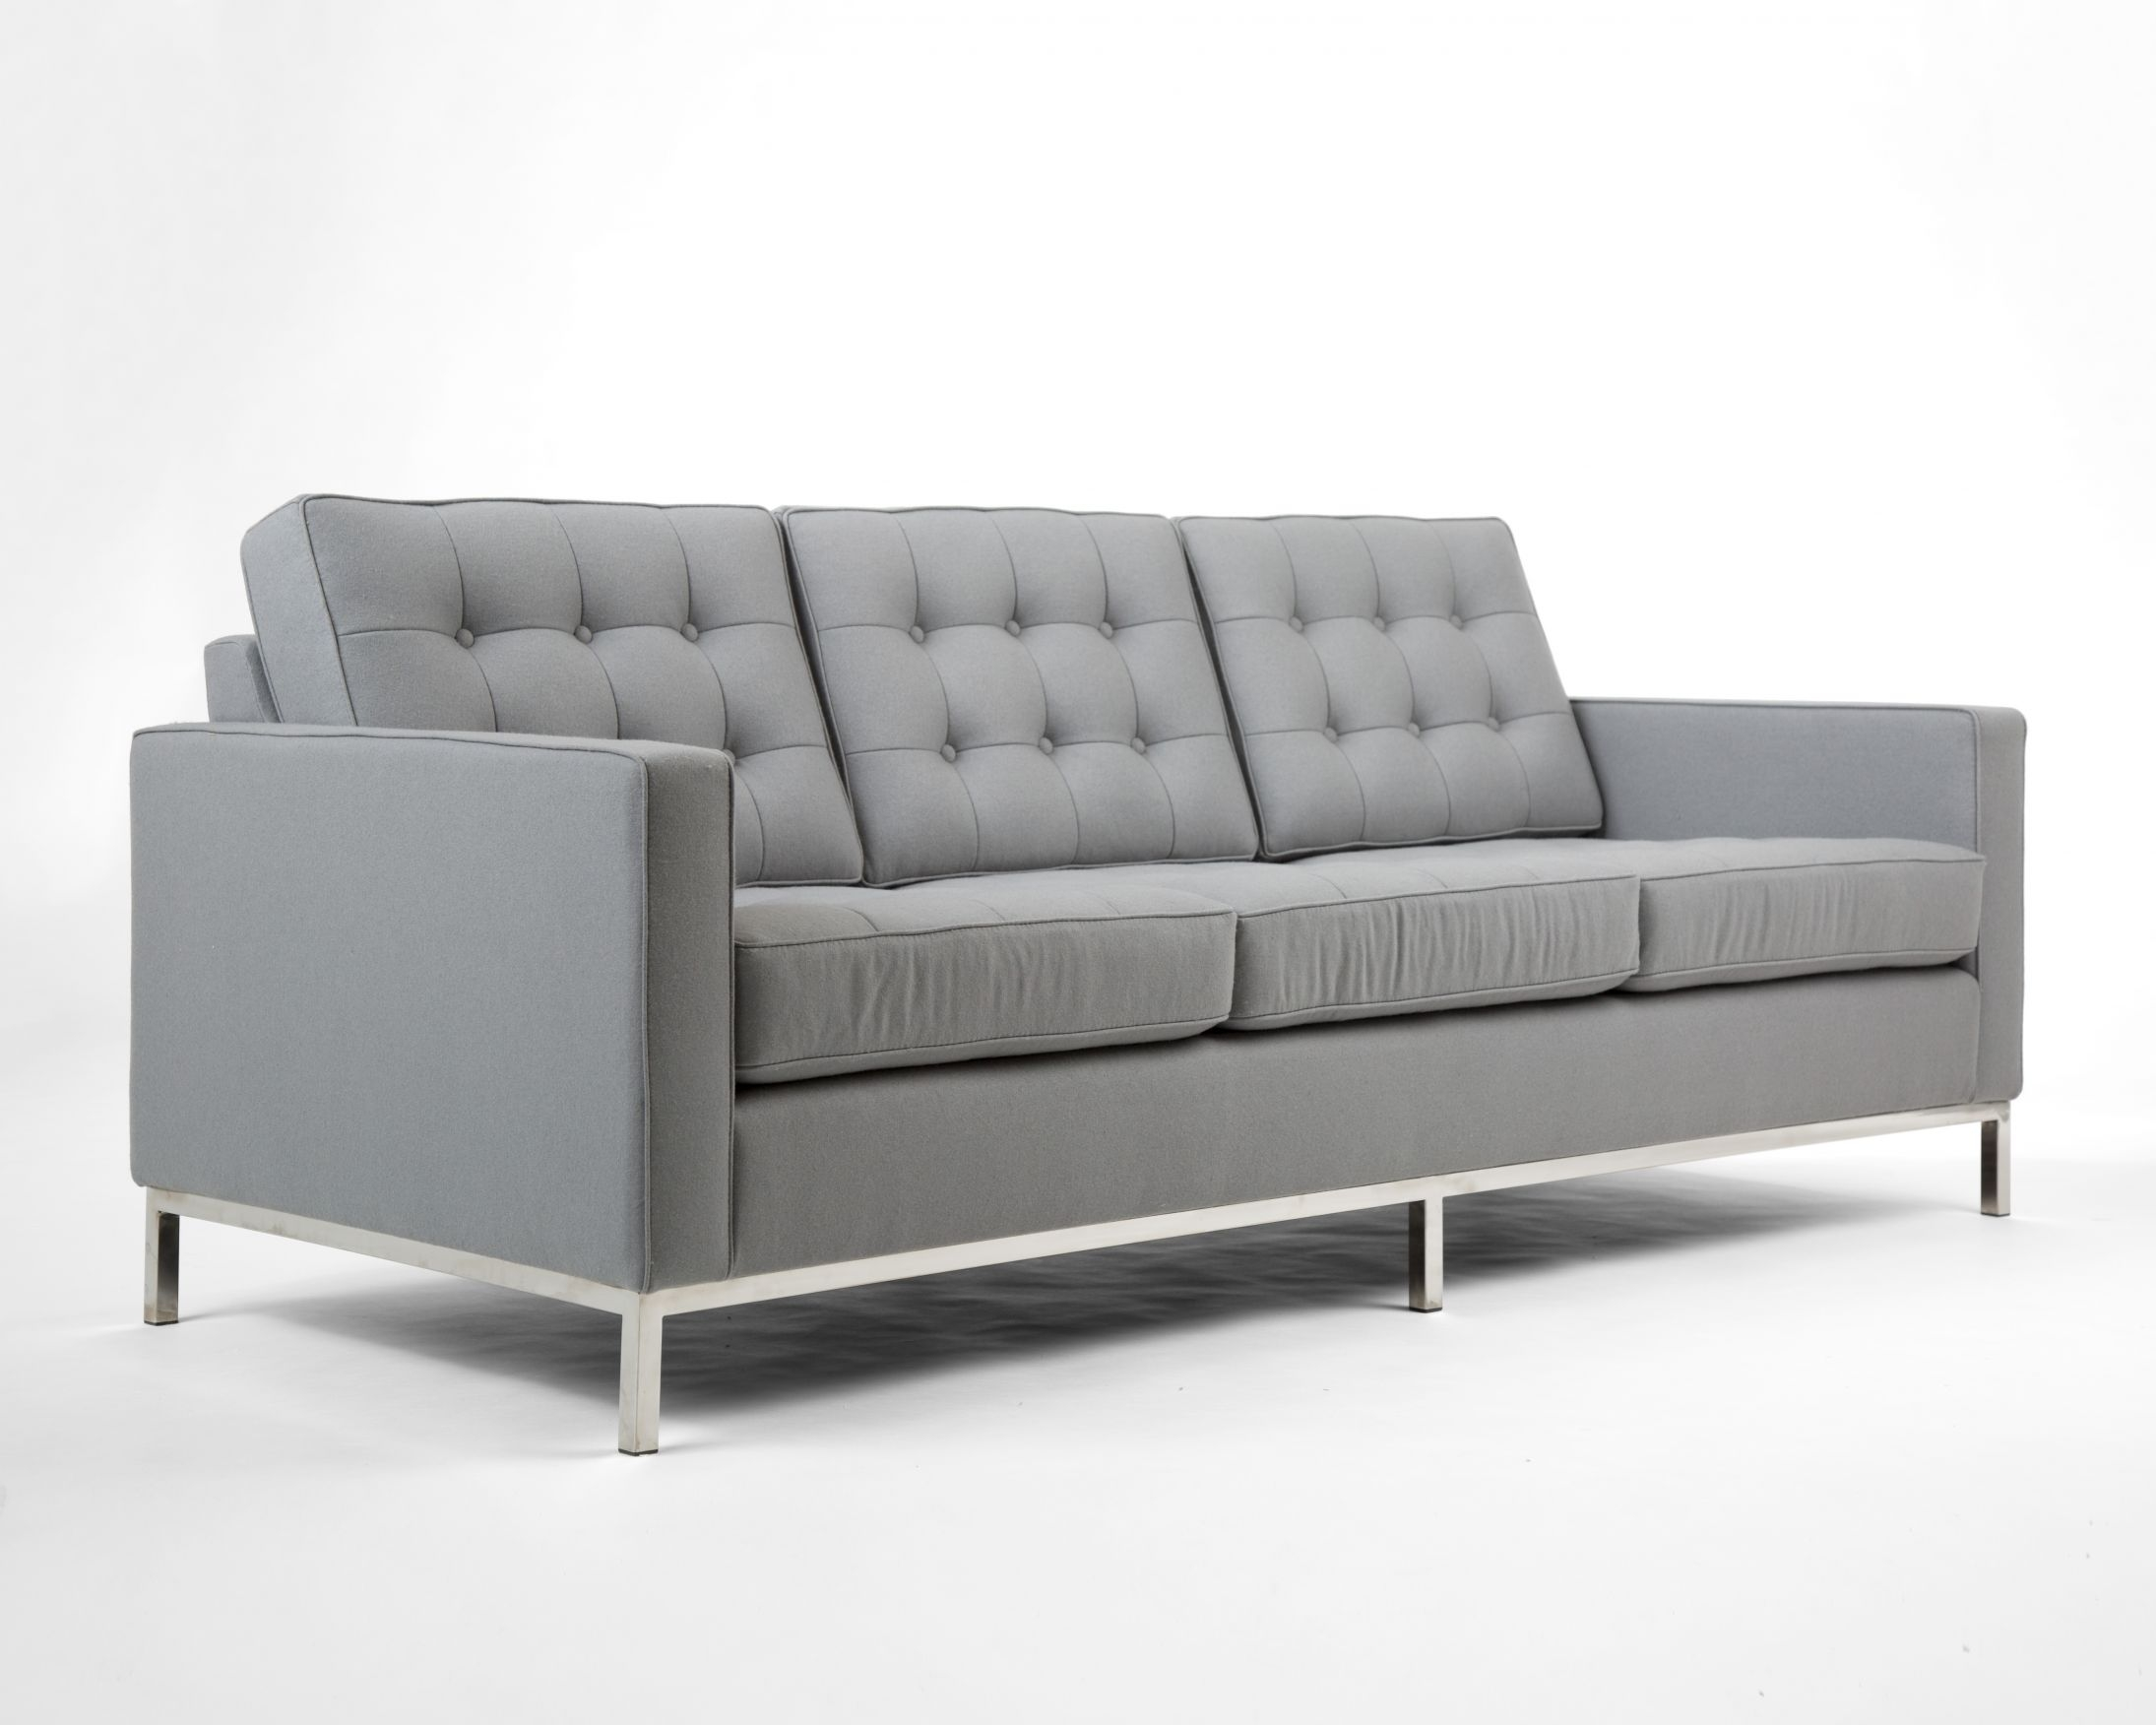 firenze sofa oversized sectional sofas for sale 15 collection of florence and loveseats ideas